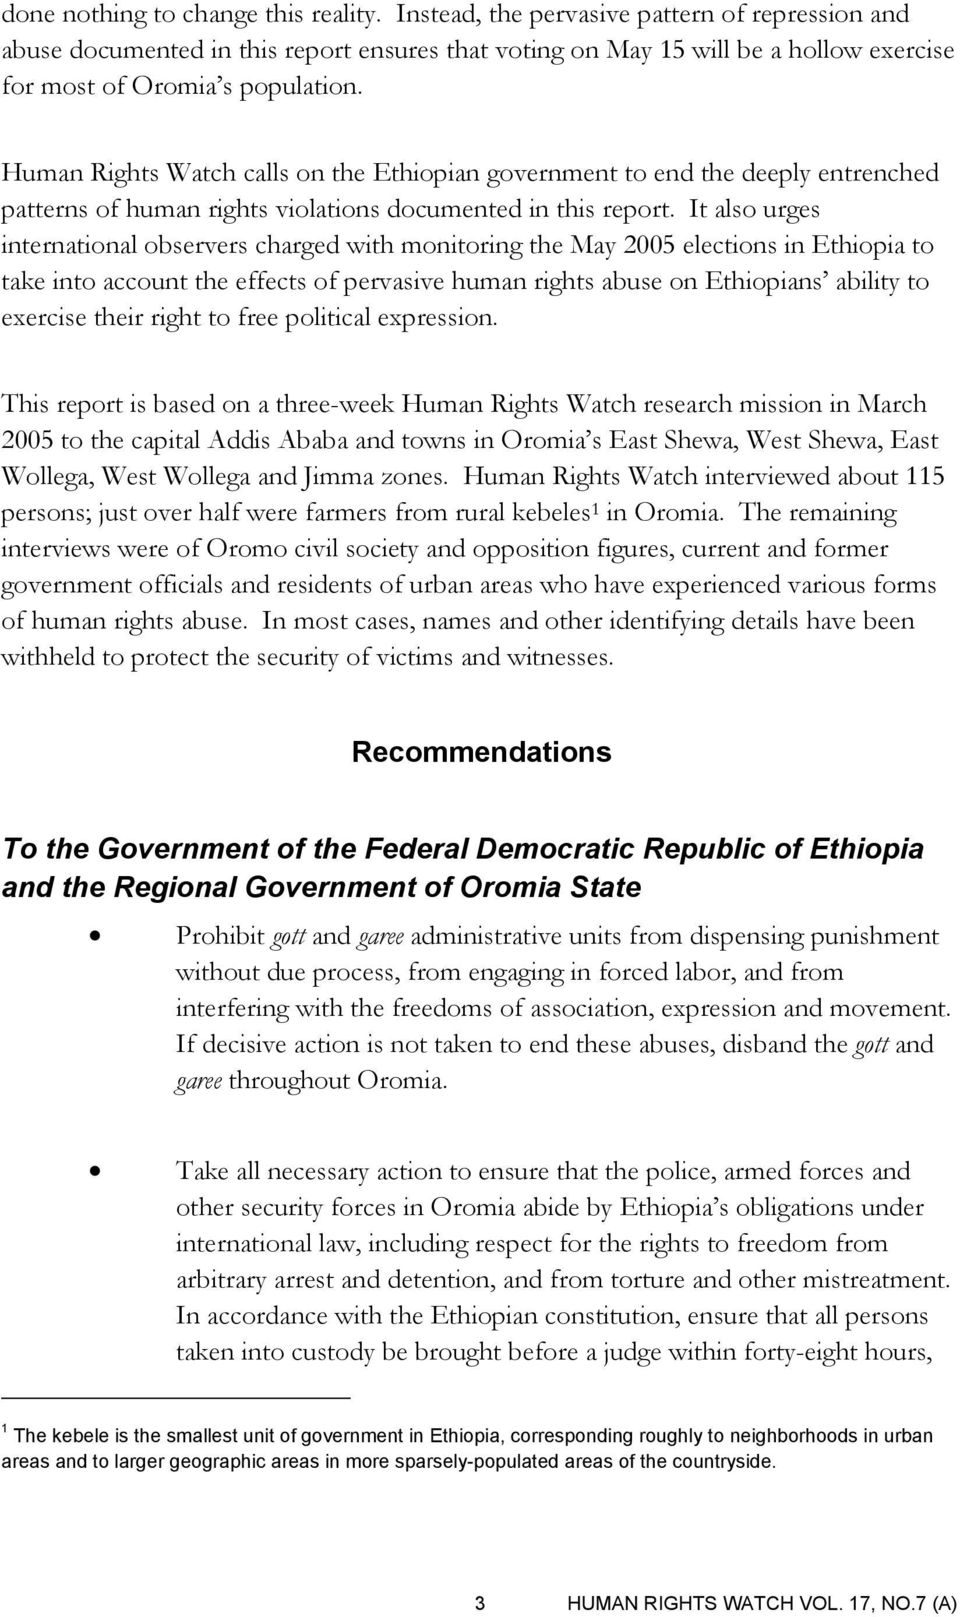 Human Rights Watch calls on the Ethiopian government to end the deeply entrenched patterns of human rights violations documented in this report.